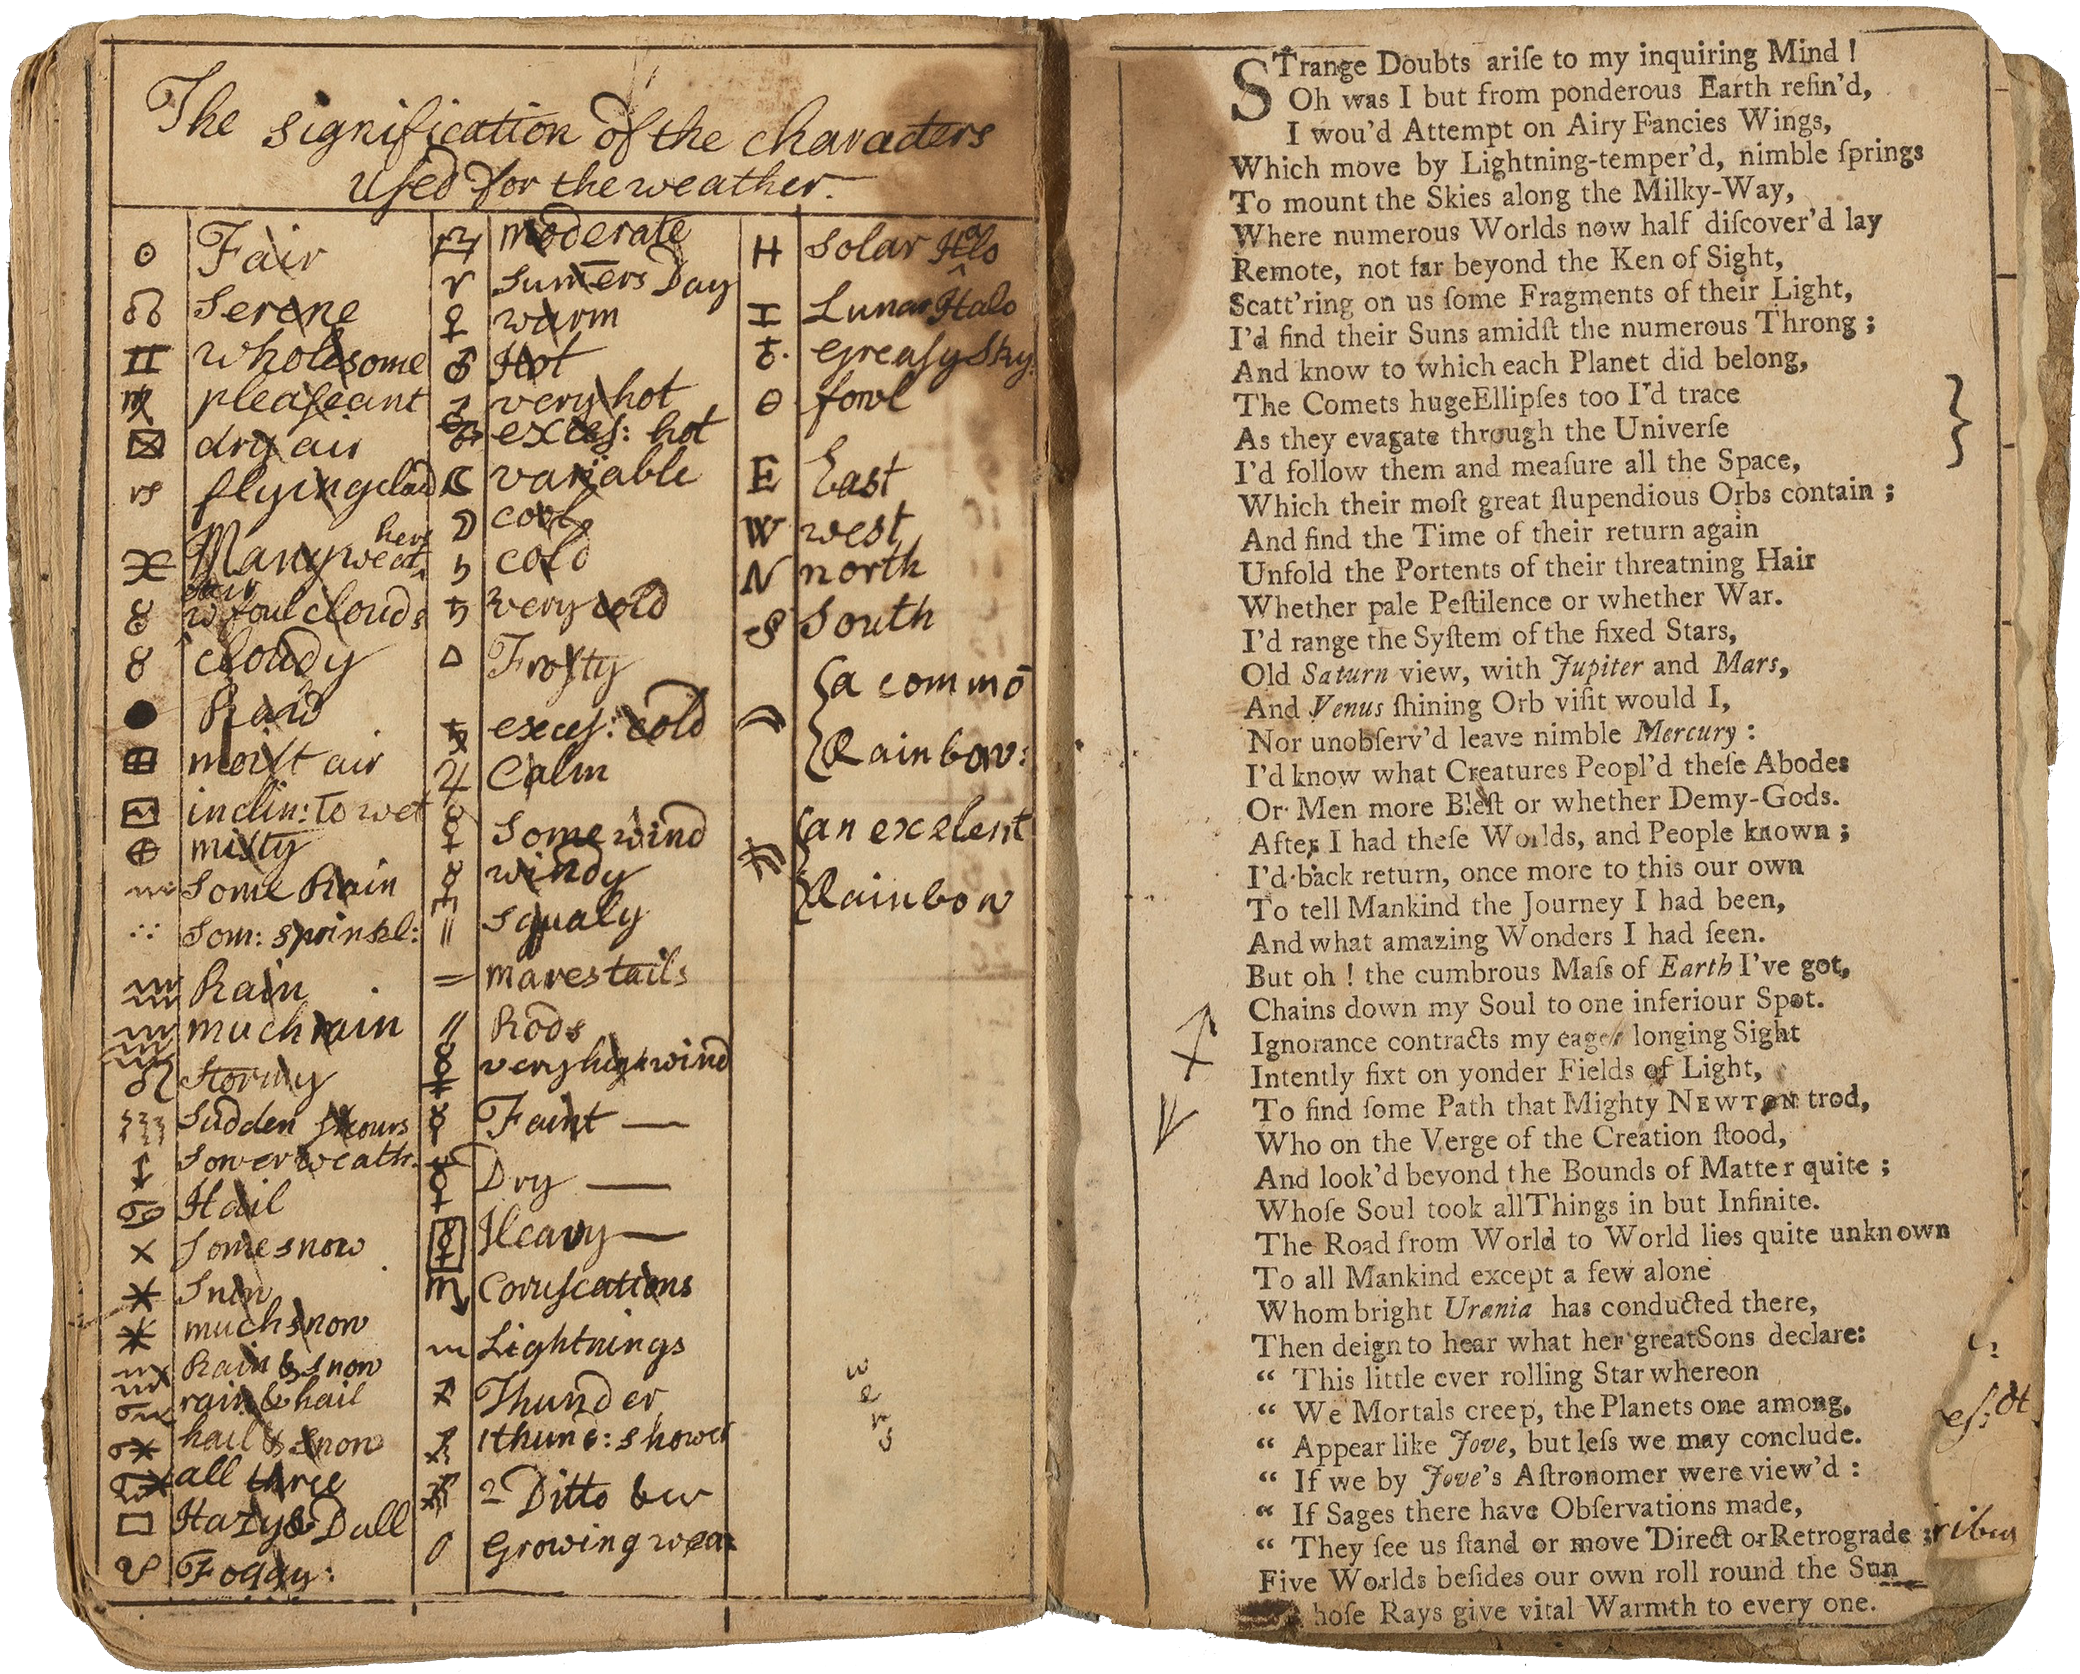 An almanac page and a blank page on which has been written a key with symbols for different types of weather.